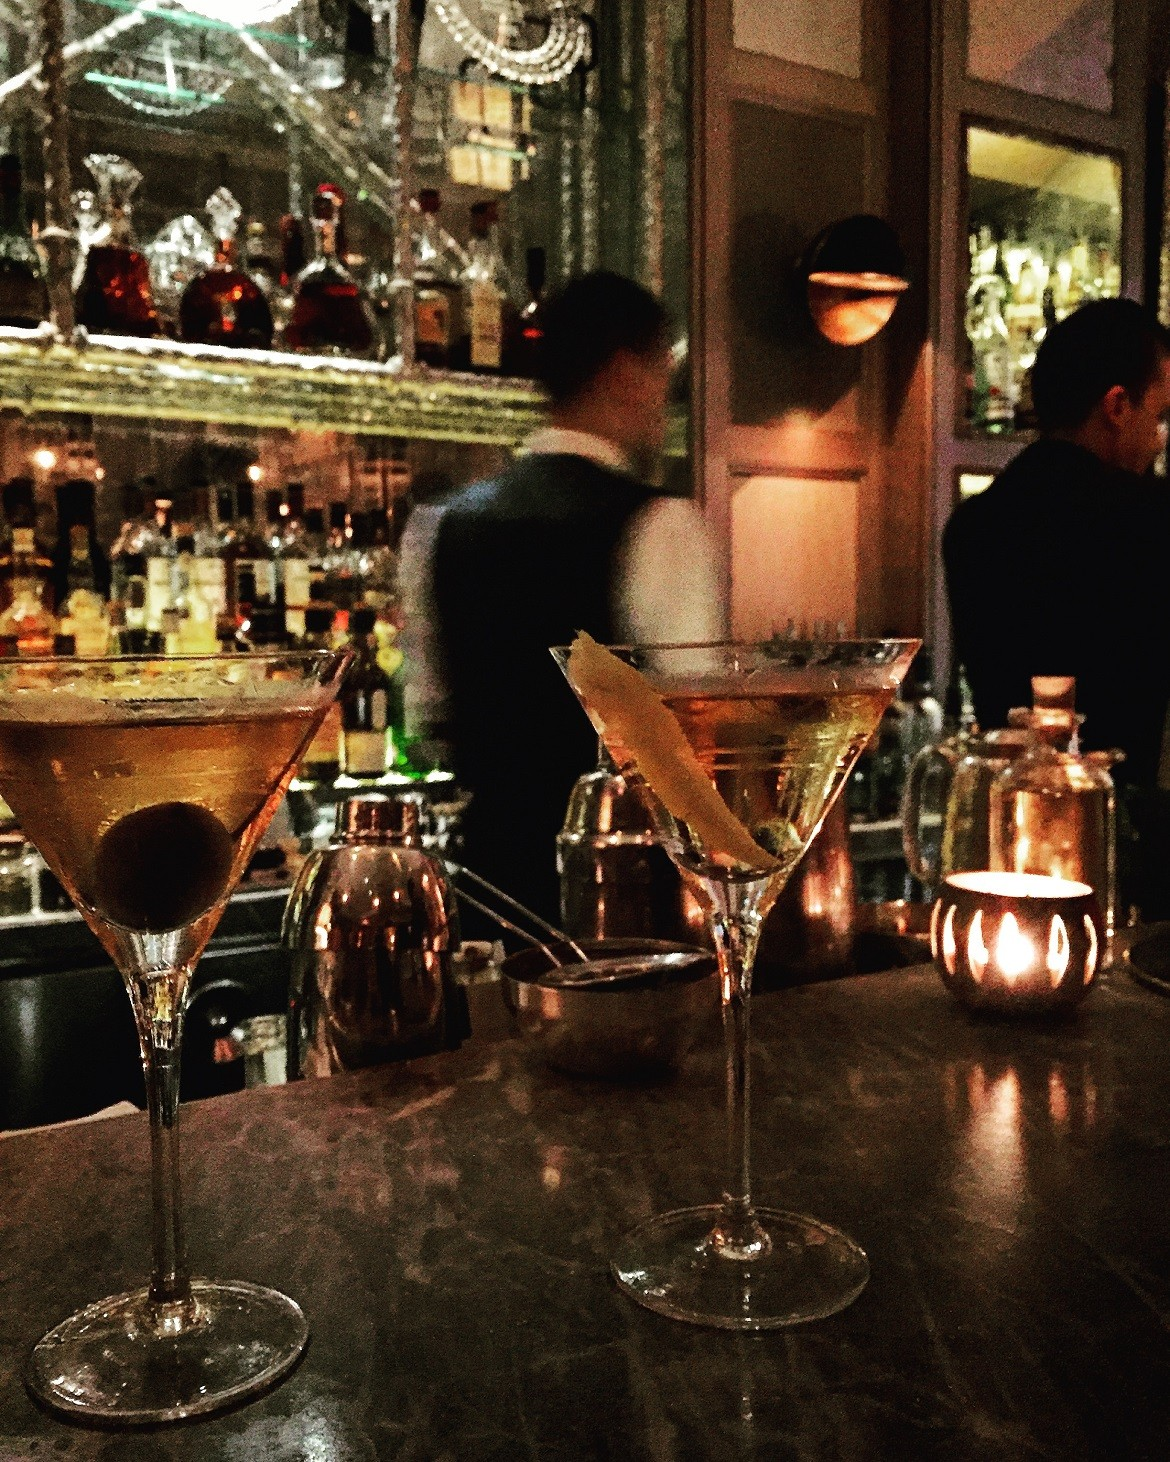 Martinis (quietly stirred not shaken) at the Connaught bar